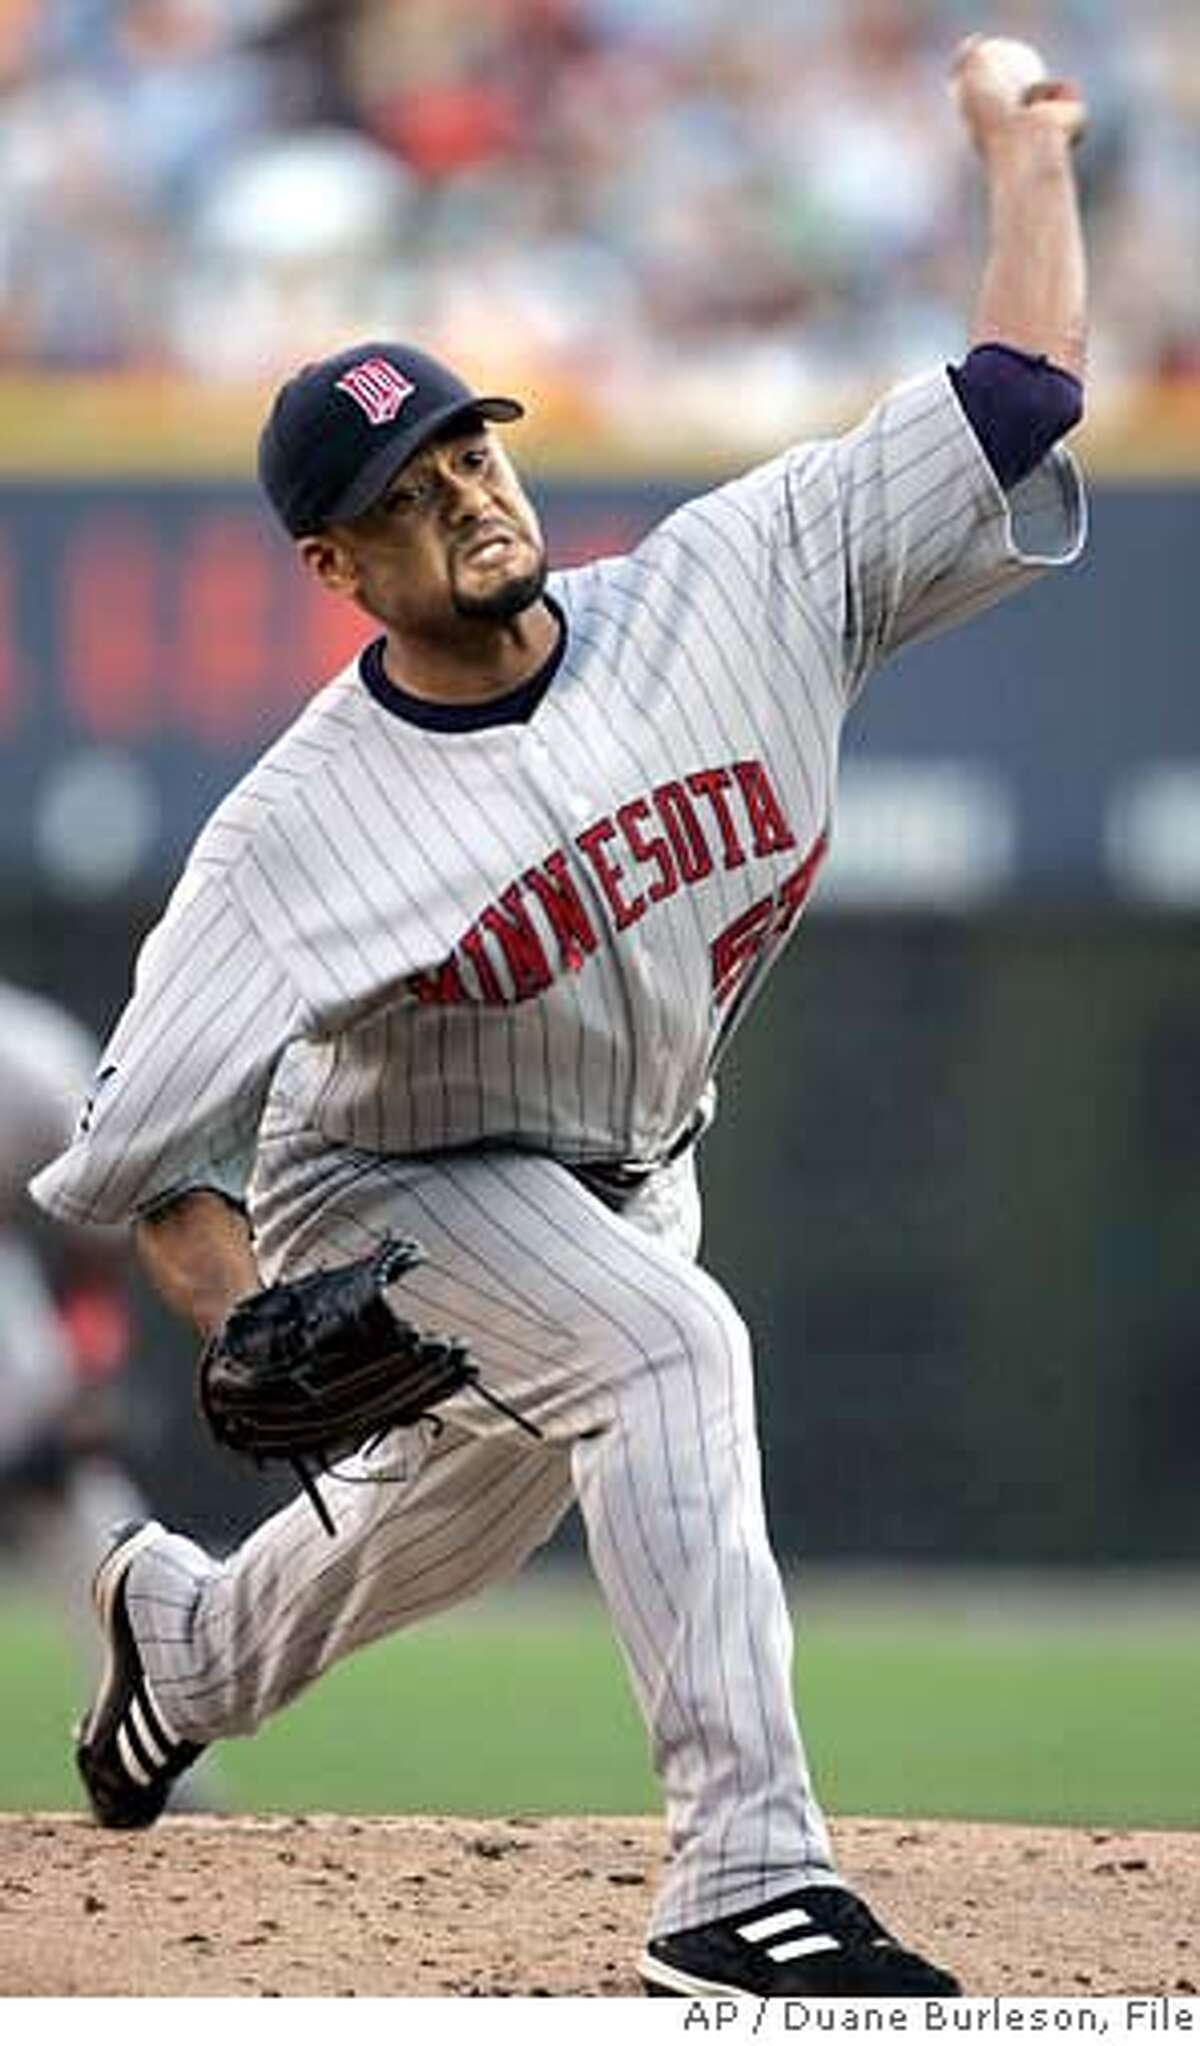 Minnesota Twins starter Johan Santana pitches against the Detroit Tigers in the first inning of a baseball game Wednesday, Aug. 9, 2006, in Detroit. (AP Photo/Duane Burleson)